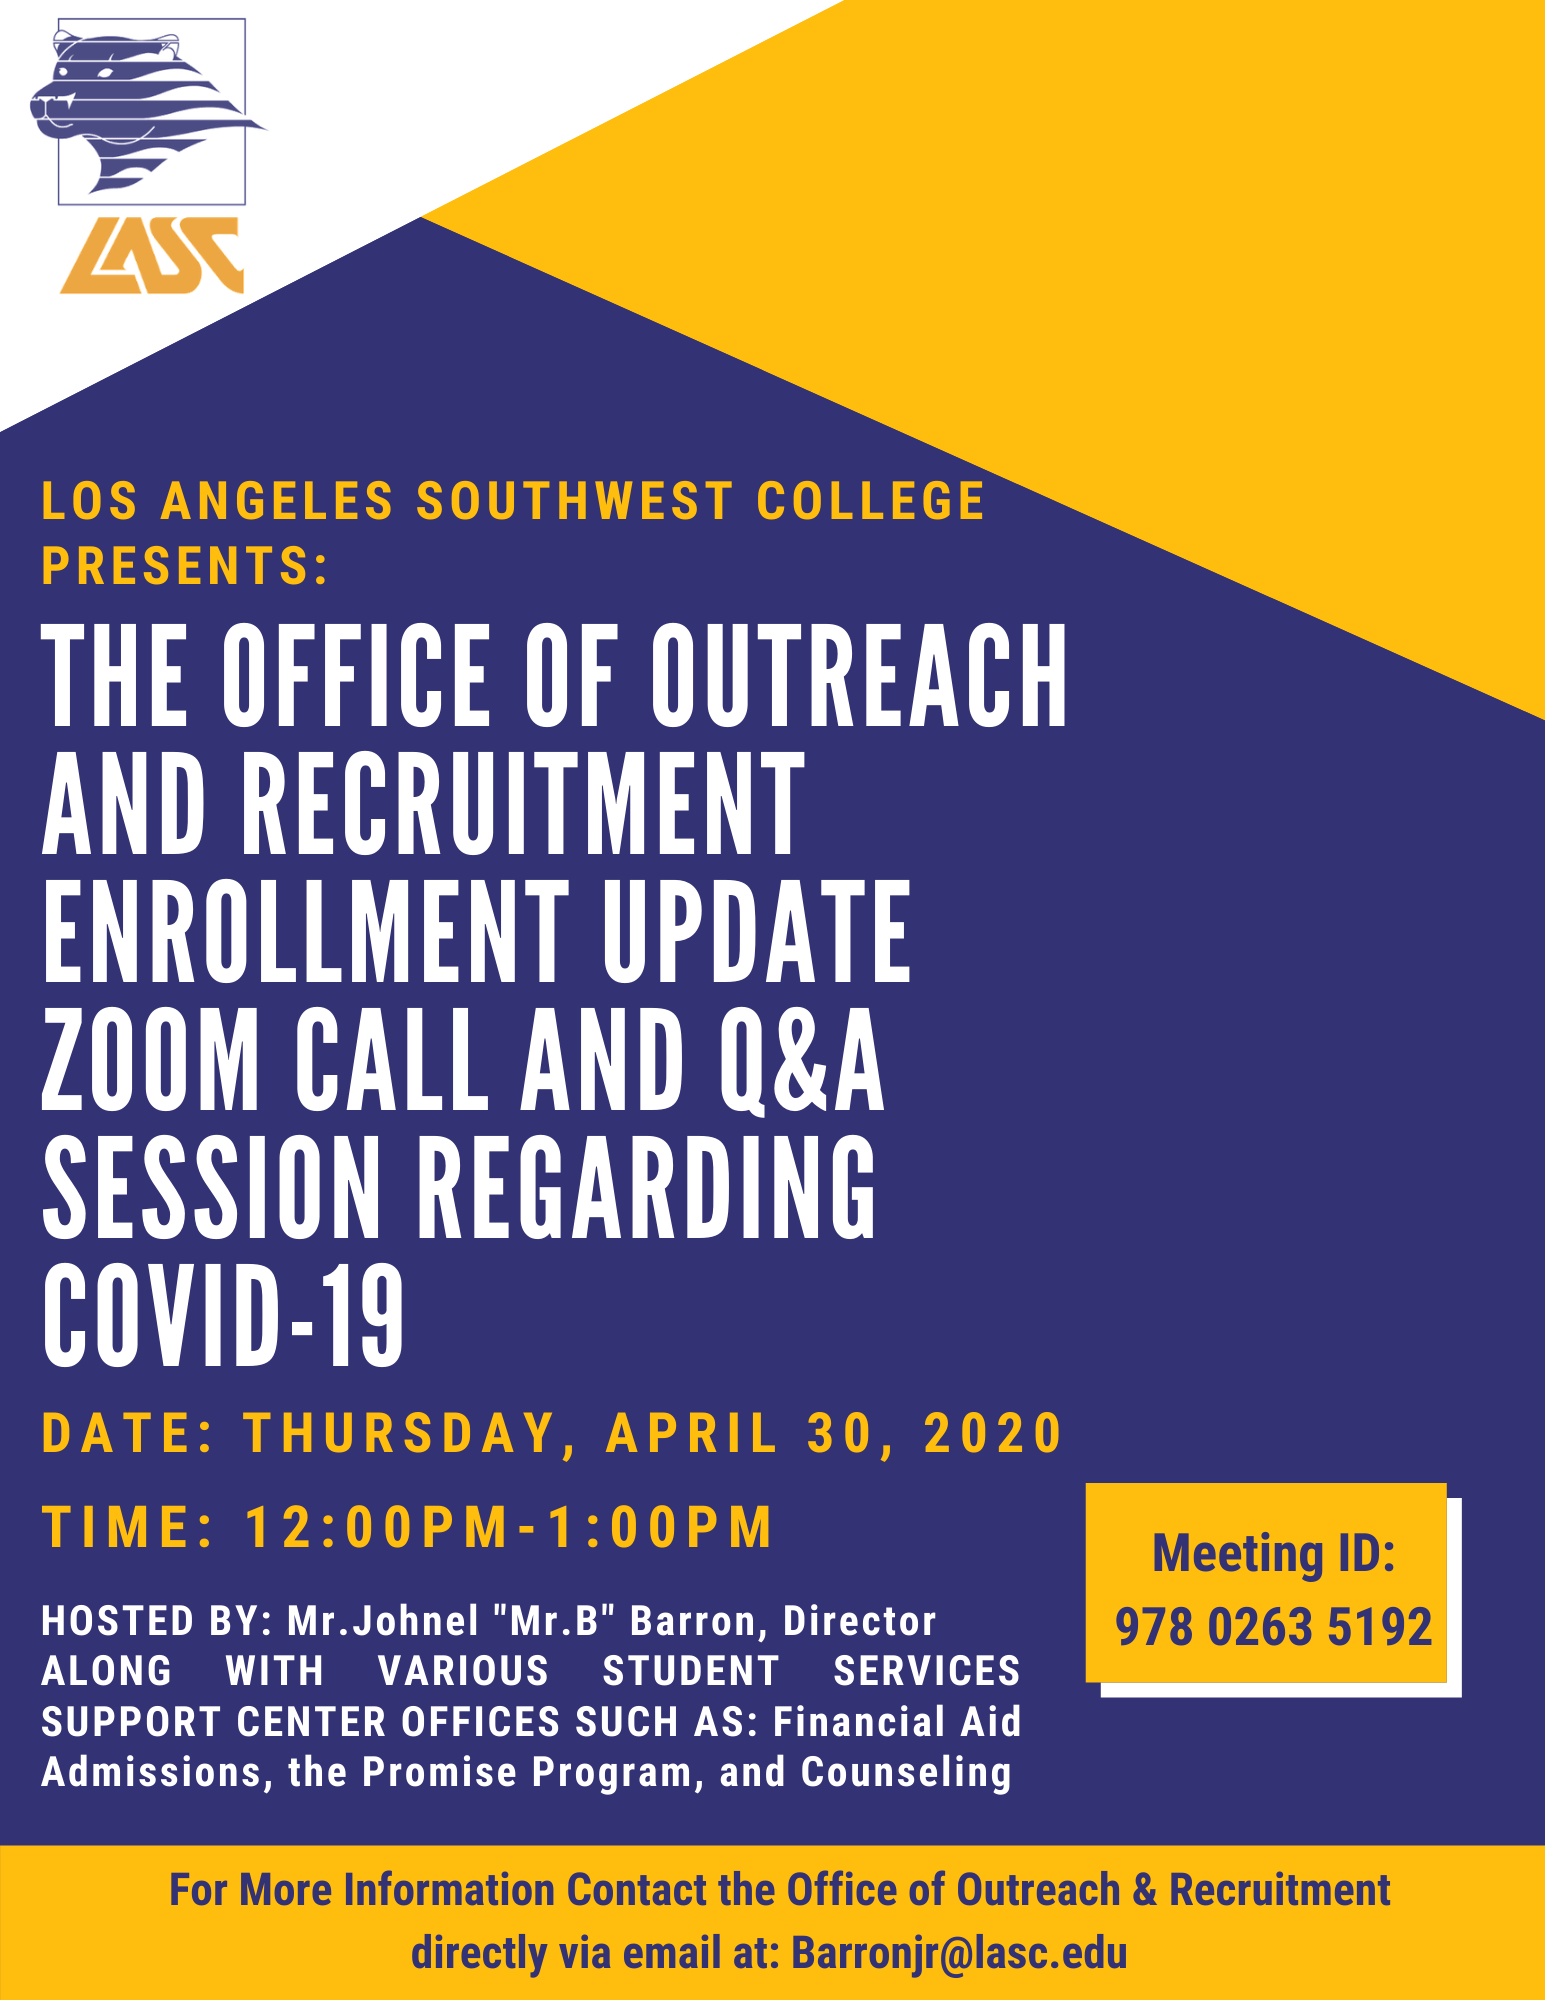 L.A. Southwest College Recruitment Flyer